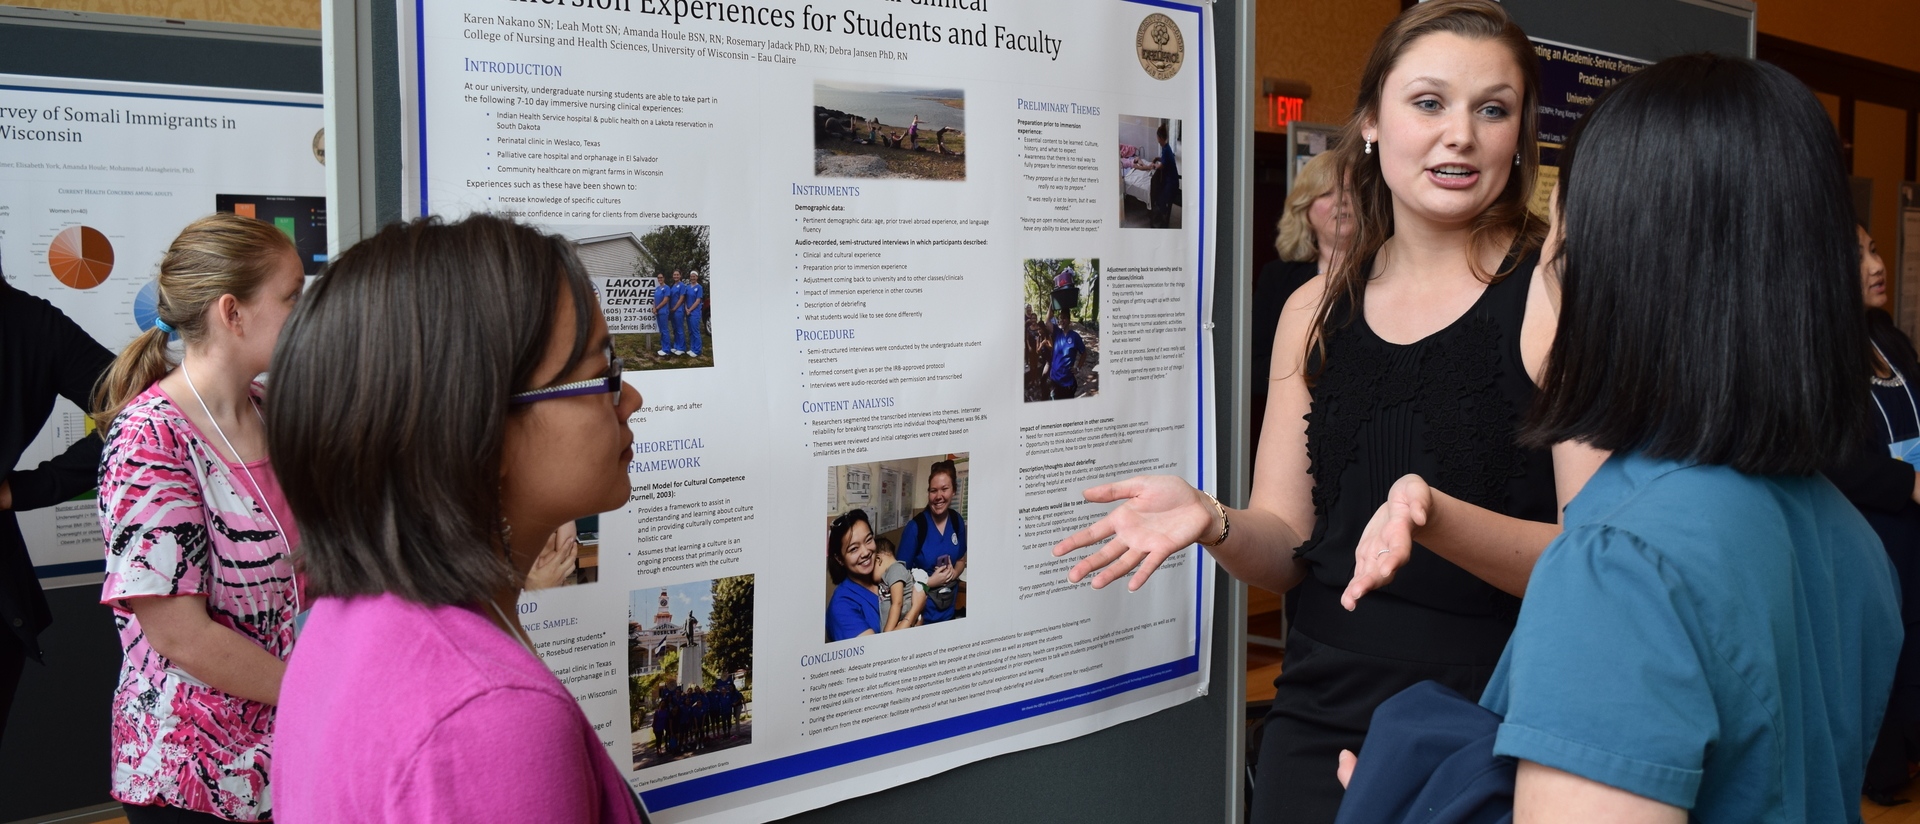 Last year Karen Nakano and Leah Mott discussed their research.